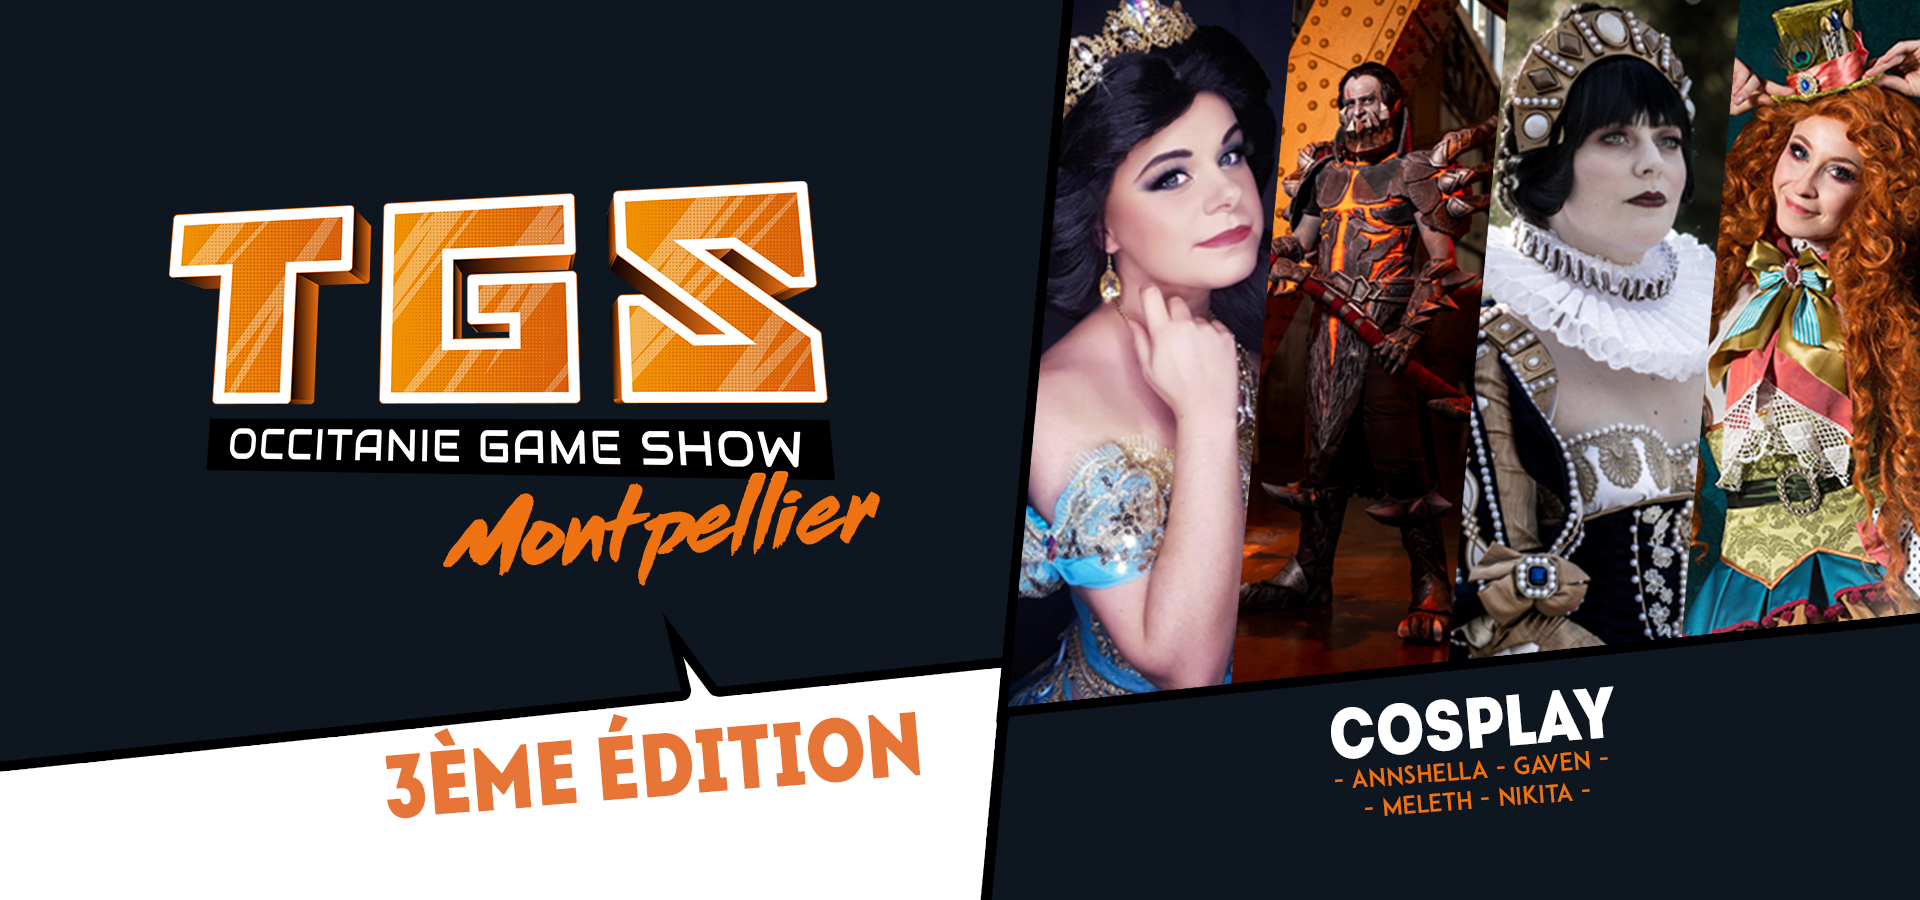 https://tgs-montpellier.fr/Cosplay